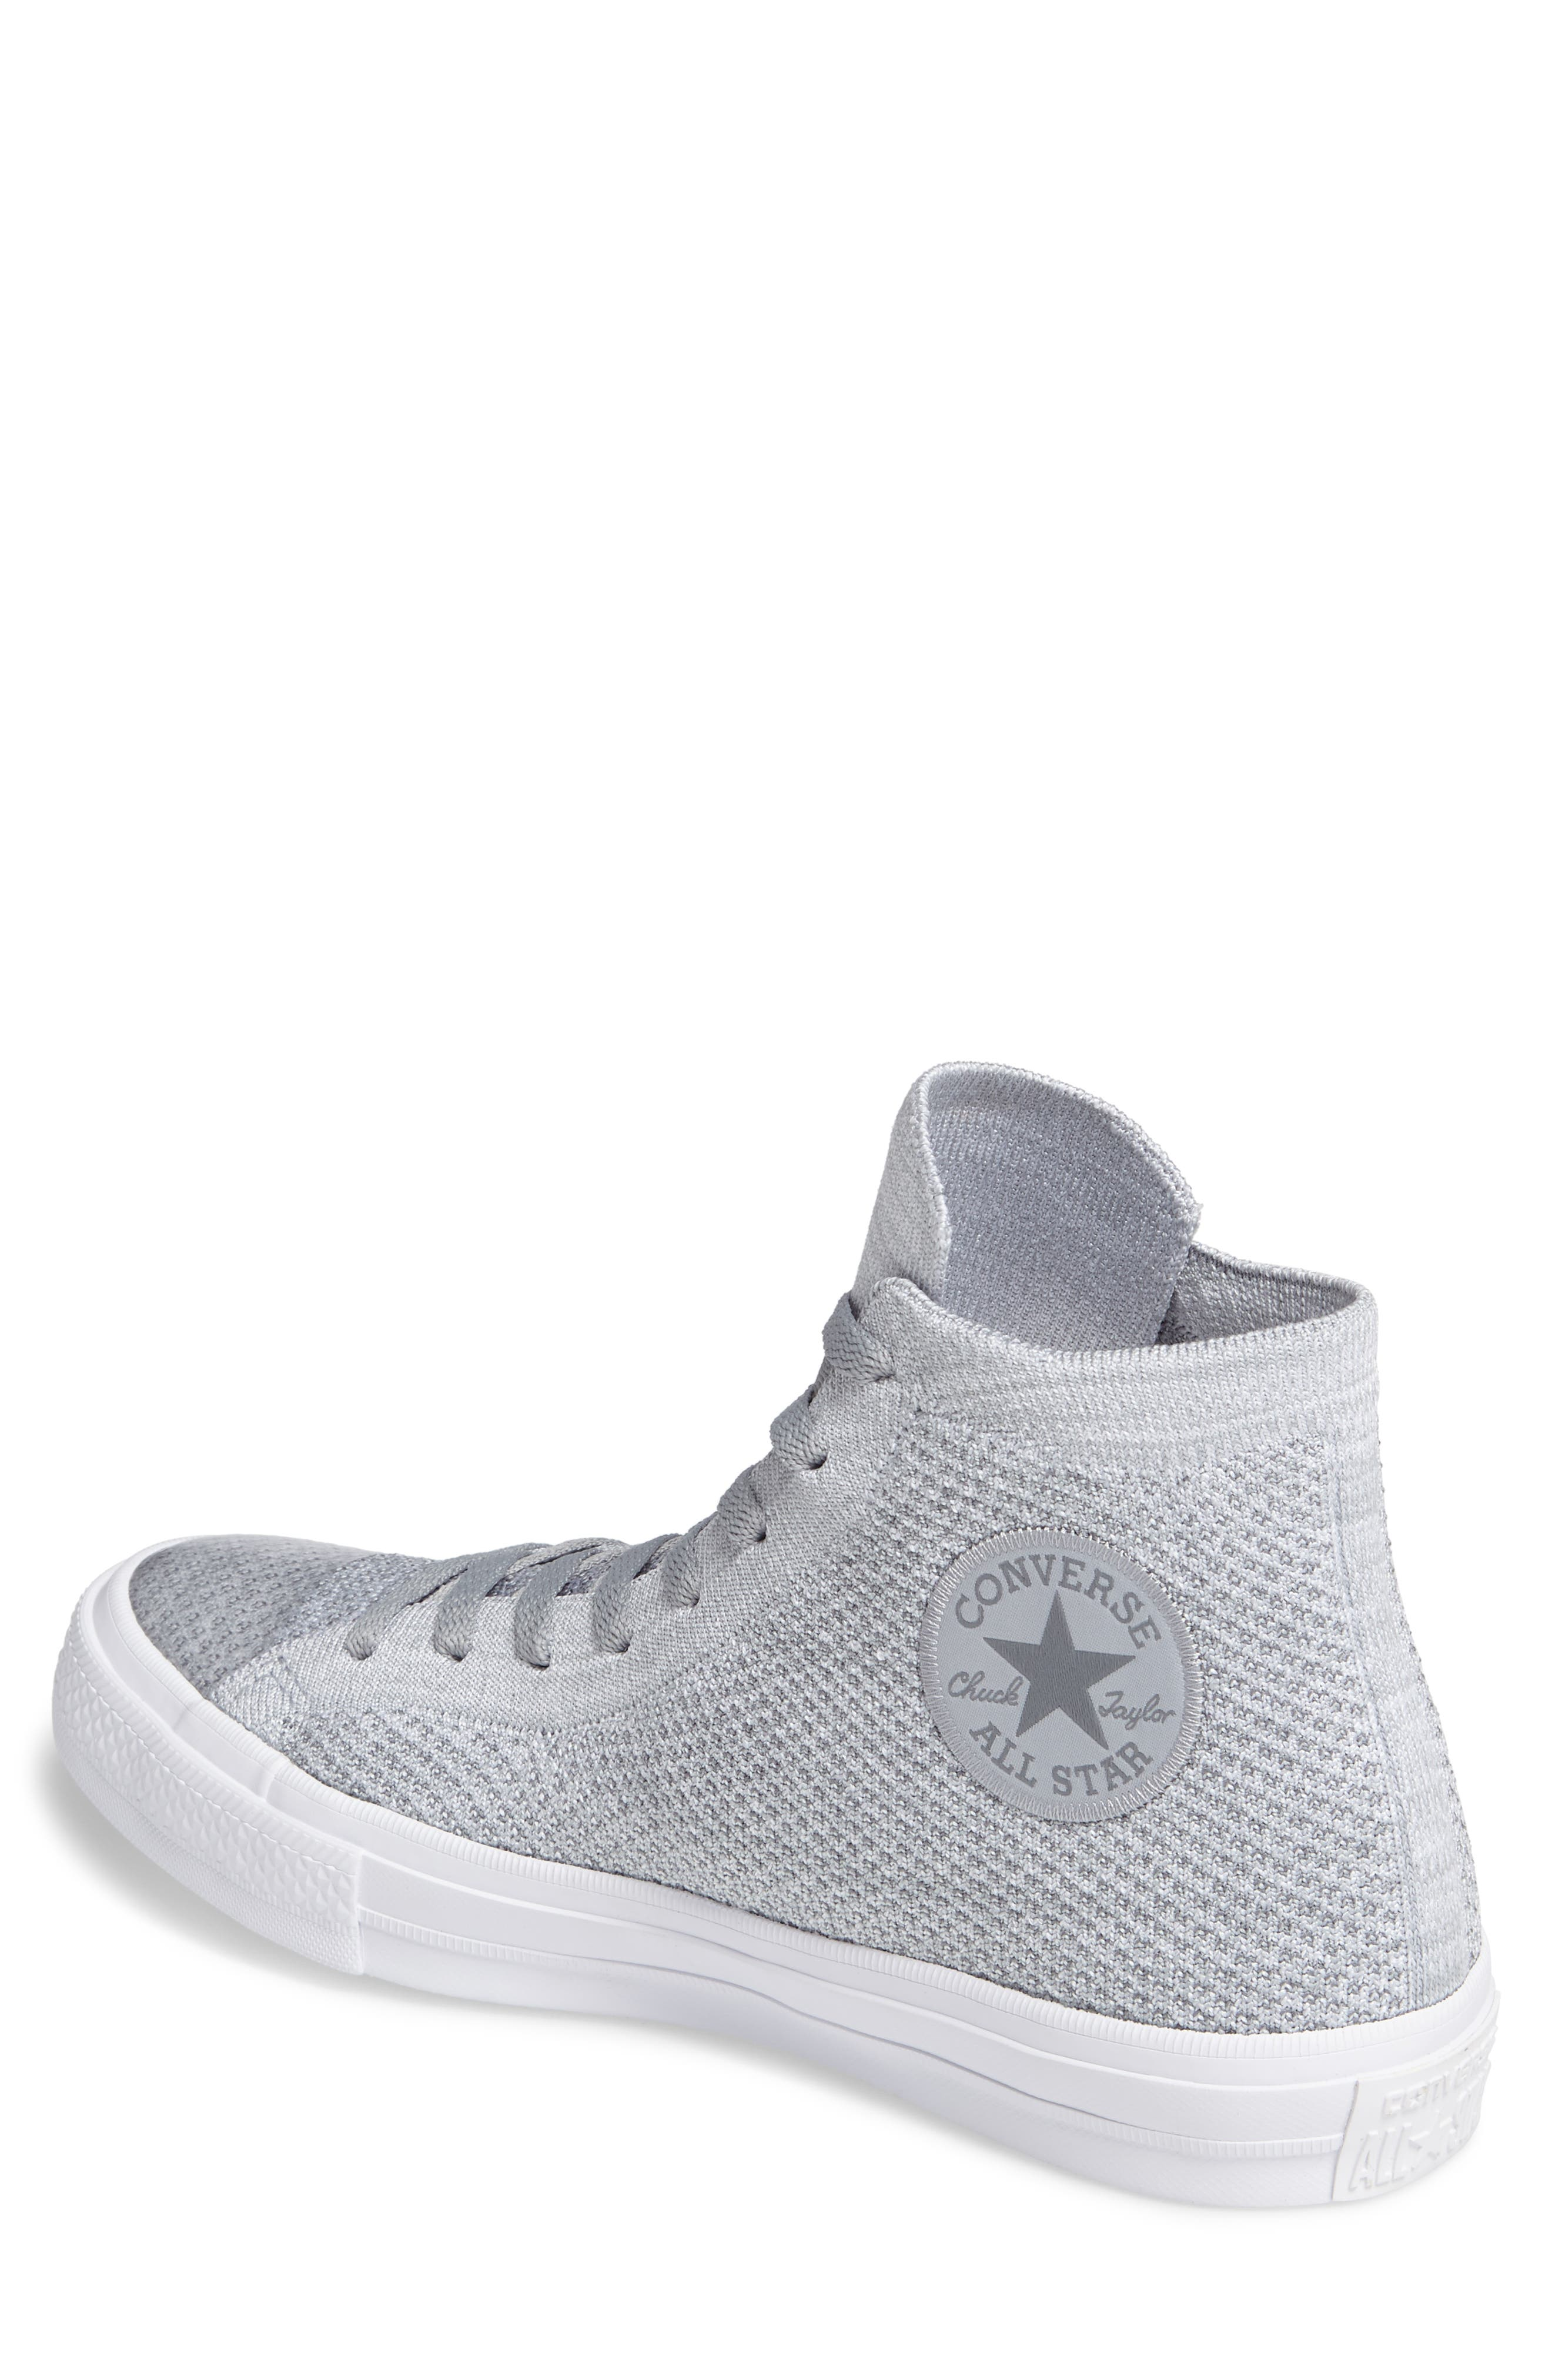 Chuck Taylor<sup>®</sup> All Star<sup>®</sup> Flyknit Hi Sneaker,                             Alternate thumbnail 9, color,